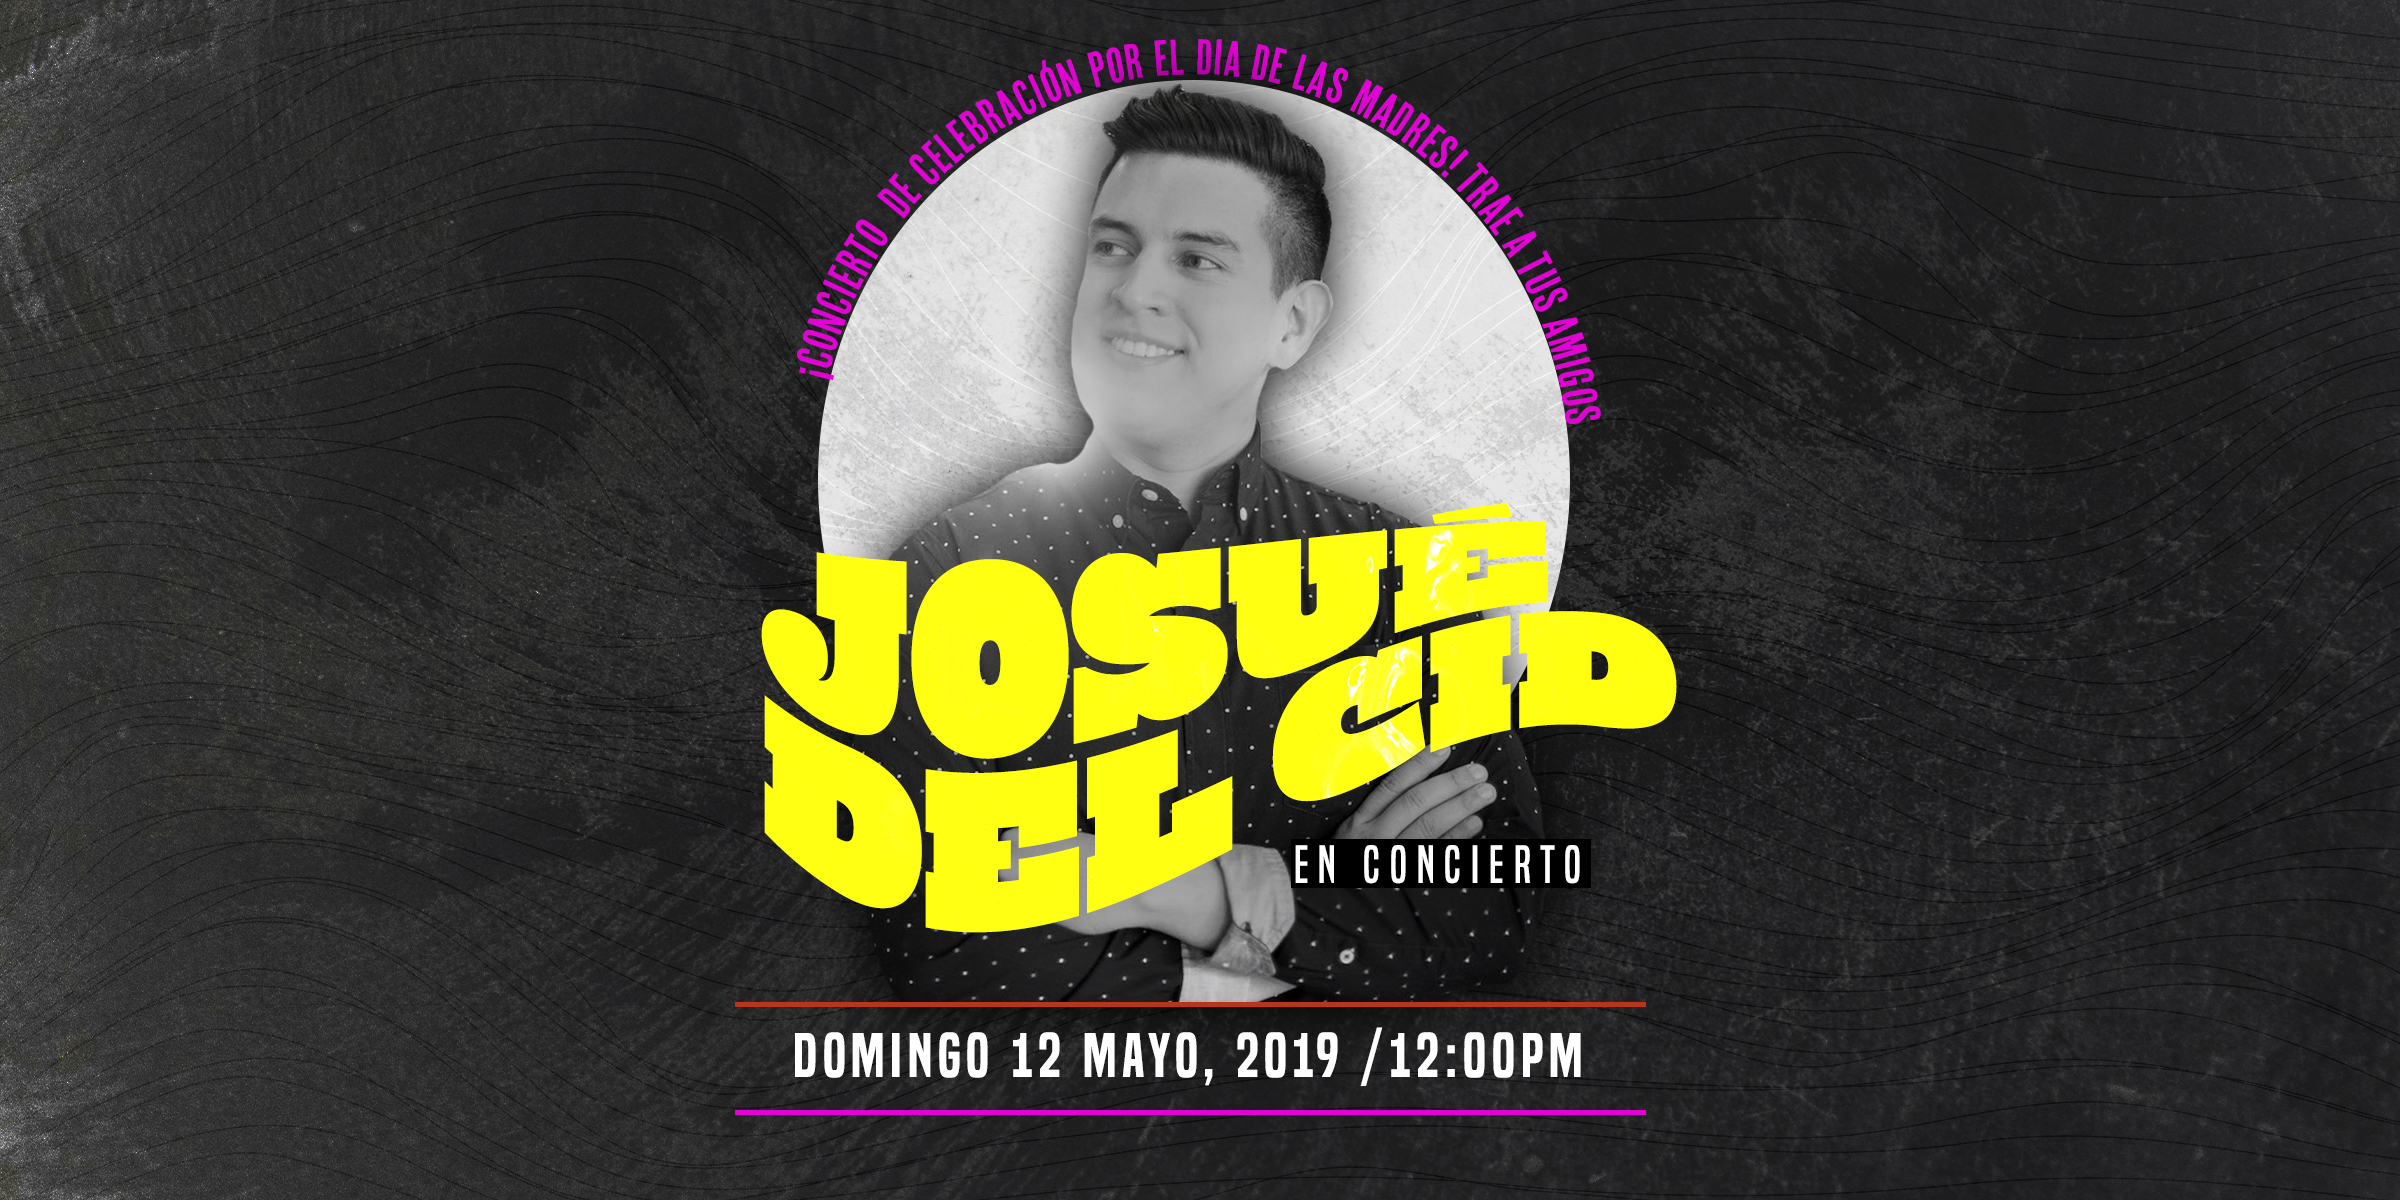 Josue del cid website .jpg